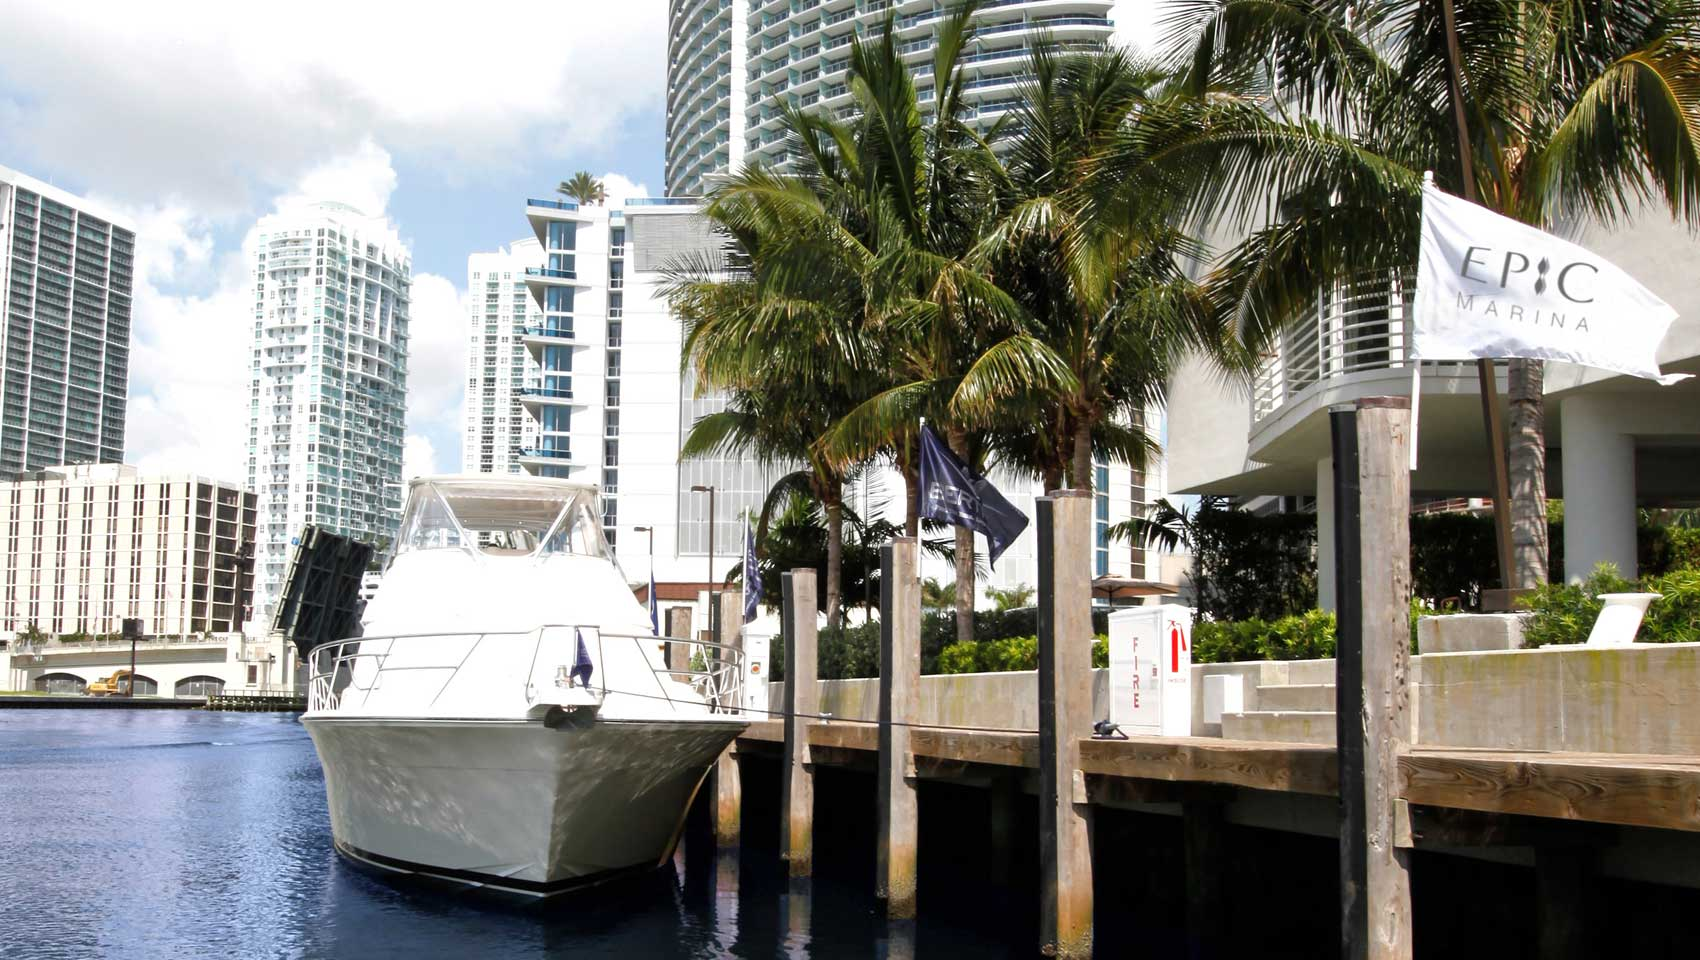 Miami marina at Kimpton EPIC Hotel